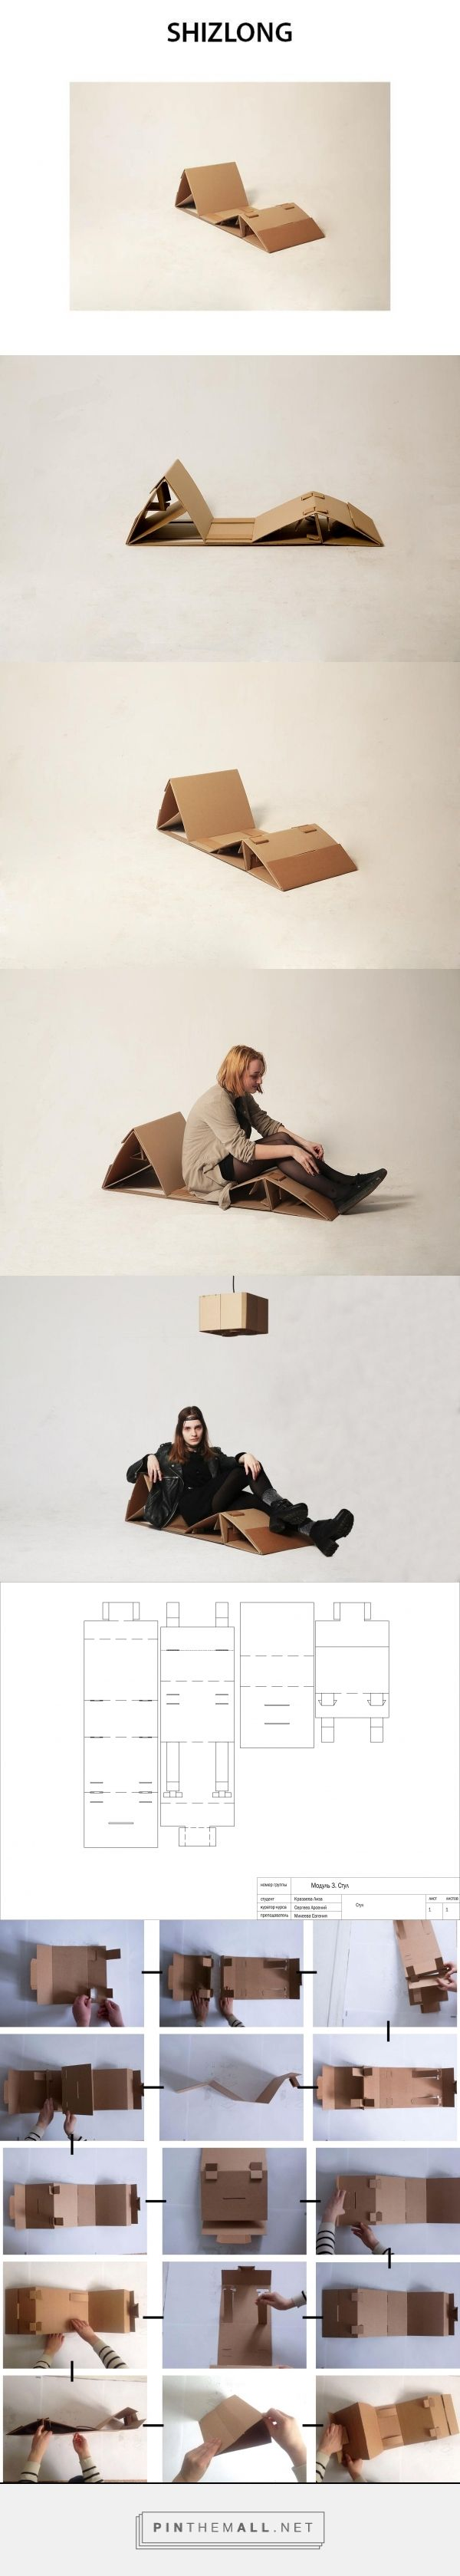 Comfortable cardboard chair designs - Cardboard Chaise Lounge By Elizaveta Krazaeva Curator Arseniy Sergeev Hse Art And Design School 2016